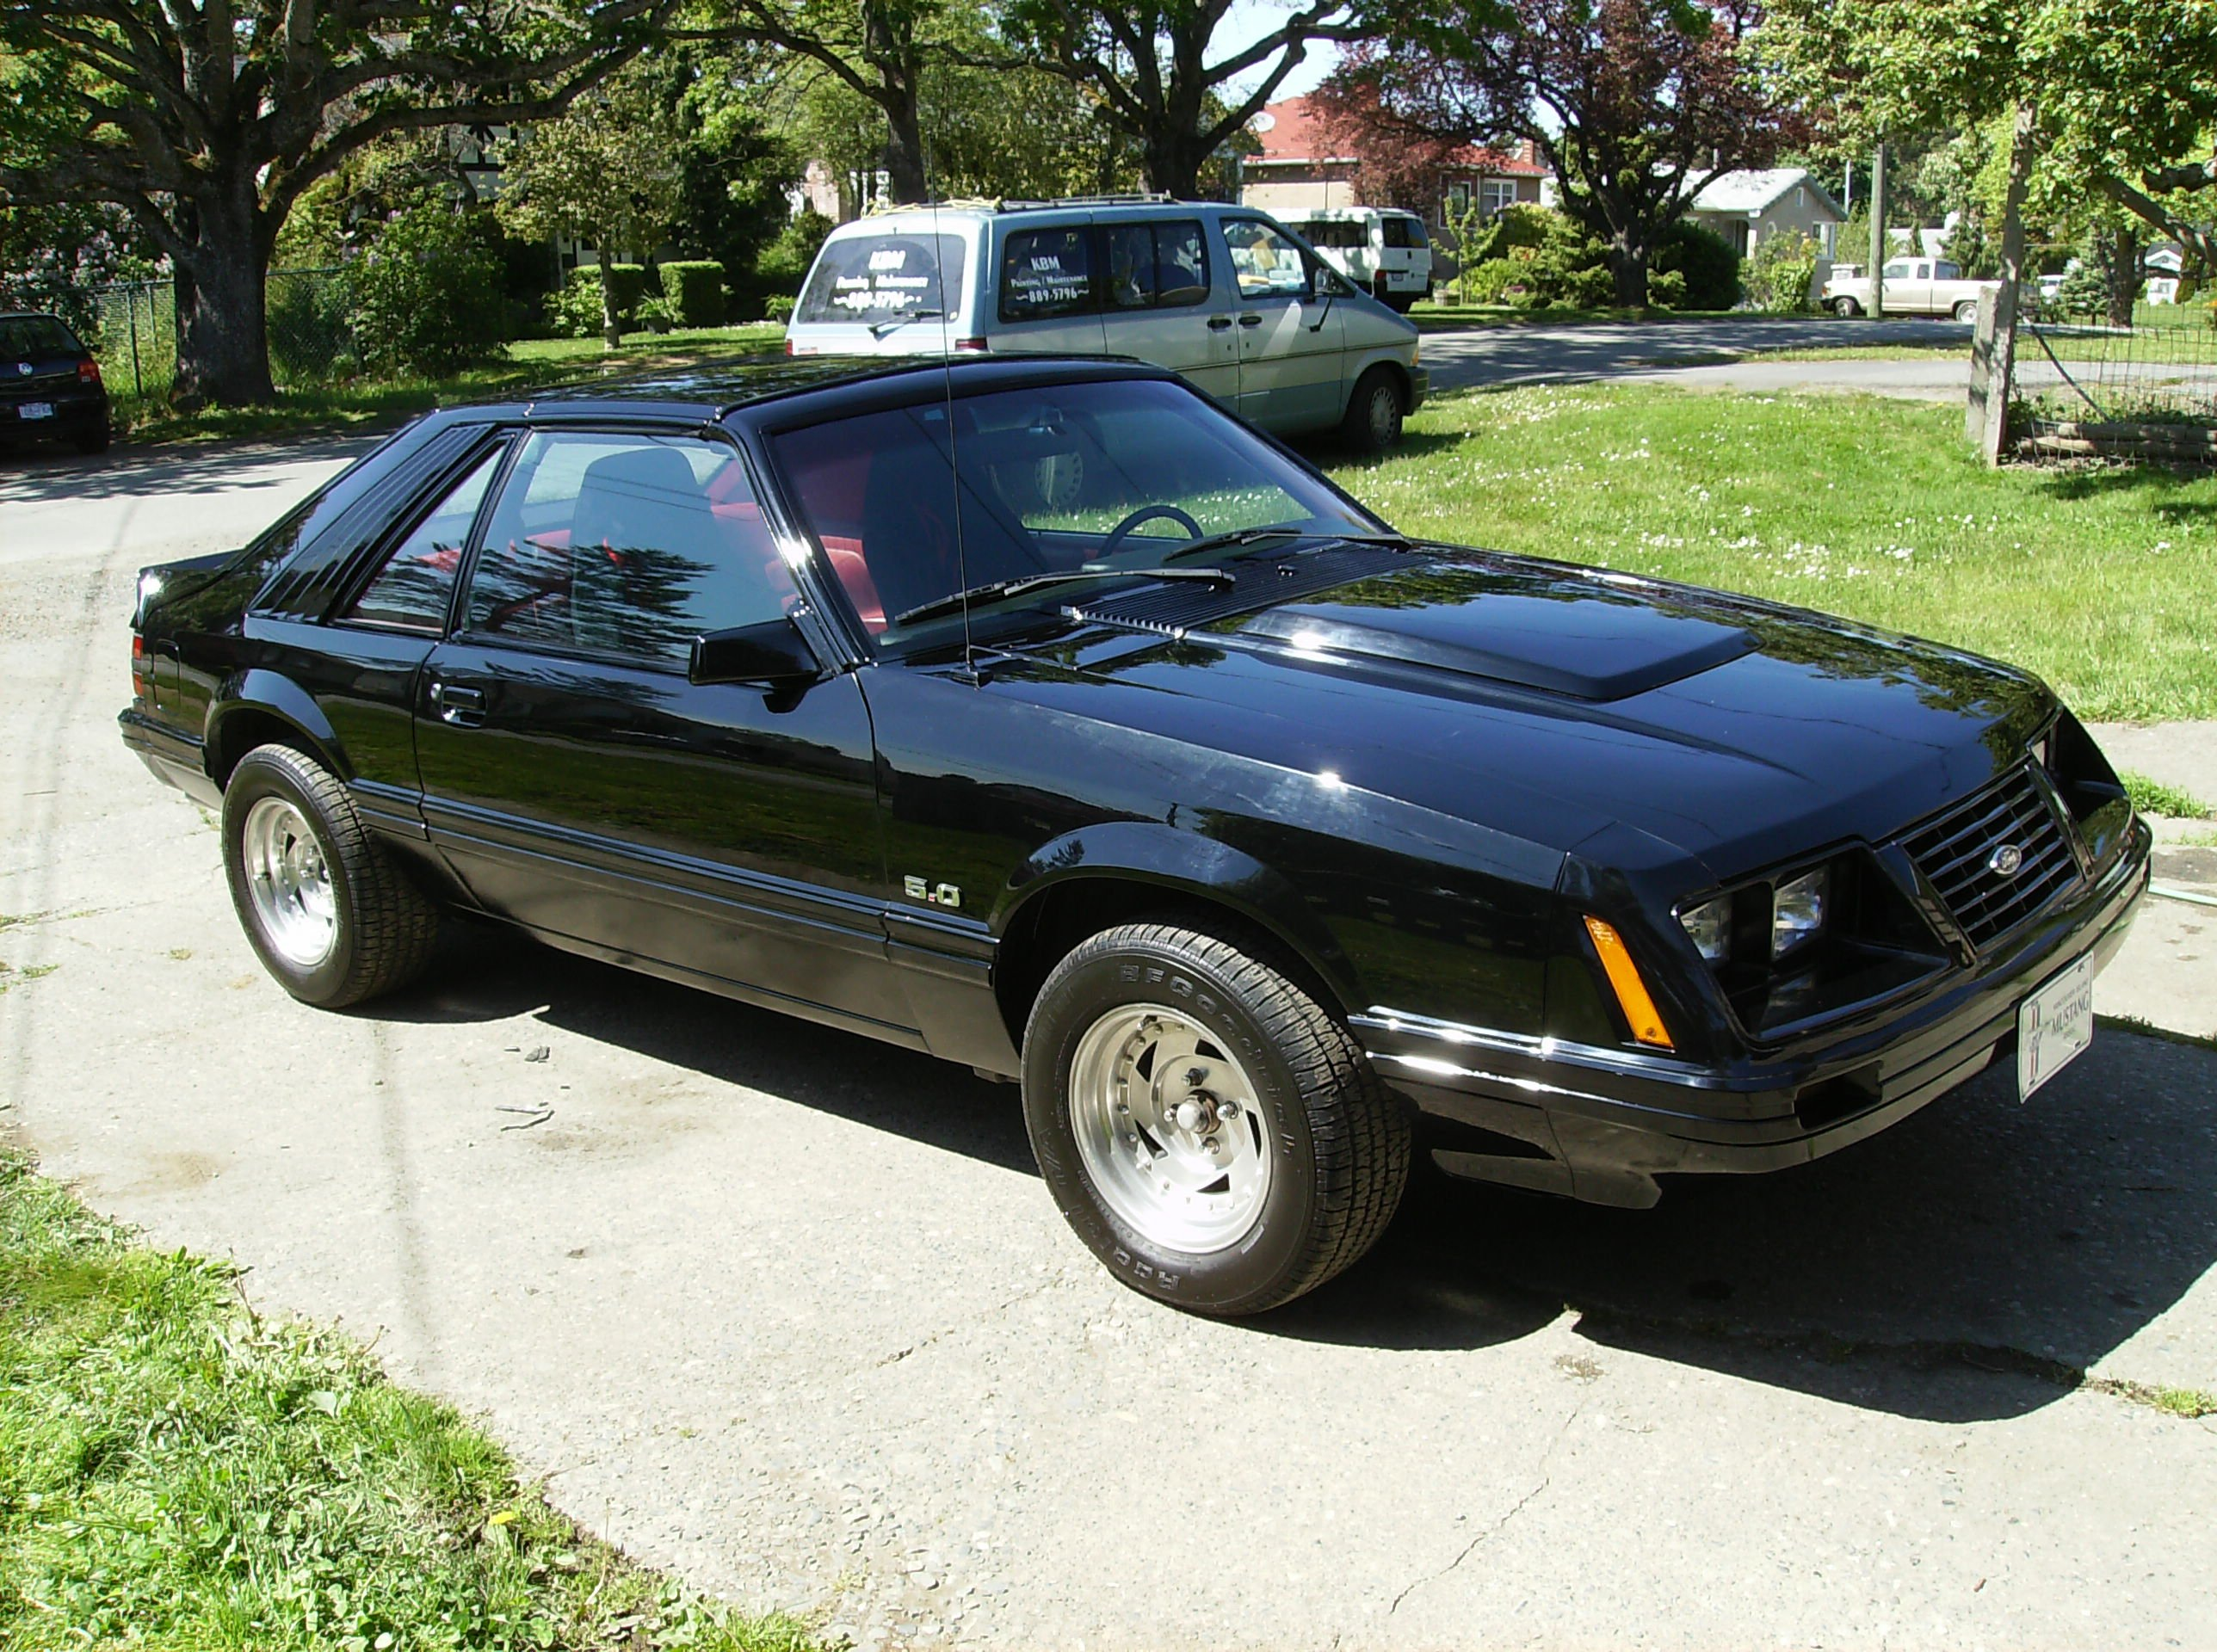 how rare is a 1983 mustang gt 4spd ford mustang forum. Black Bedroom Furniture Sets. Home Design Ideas